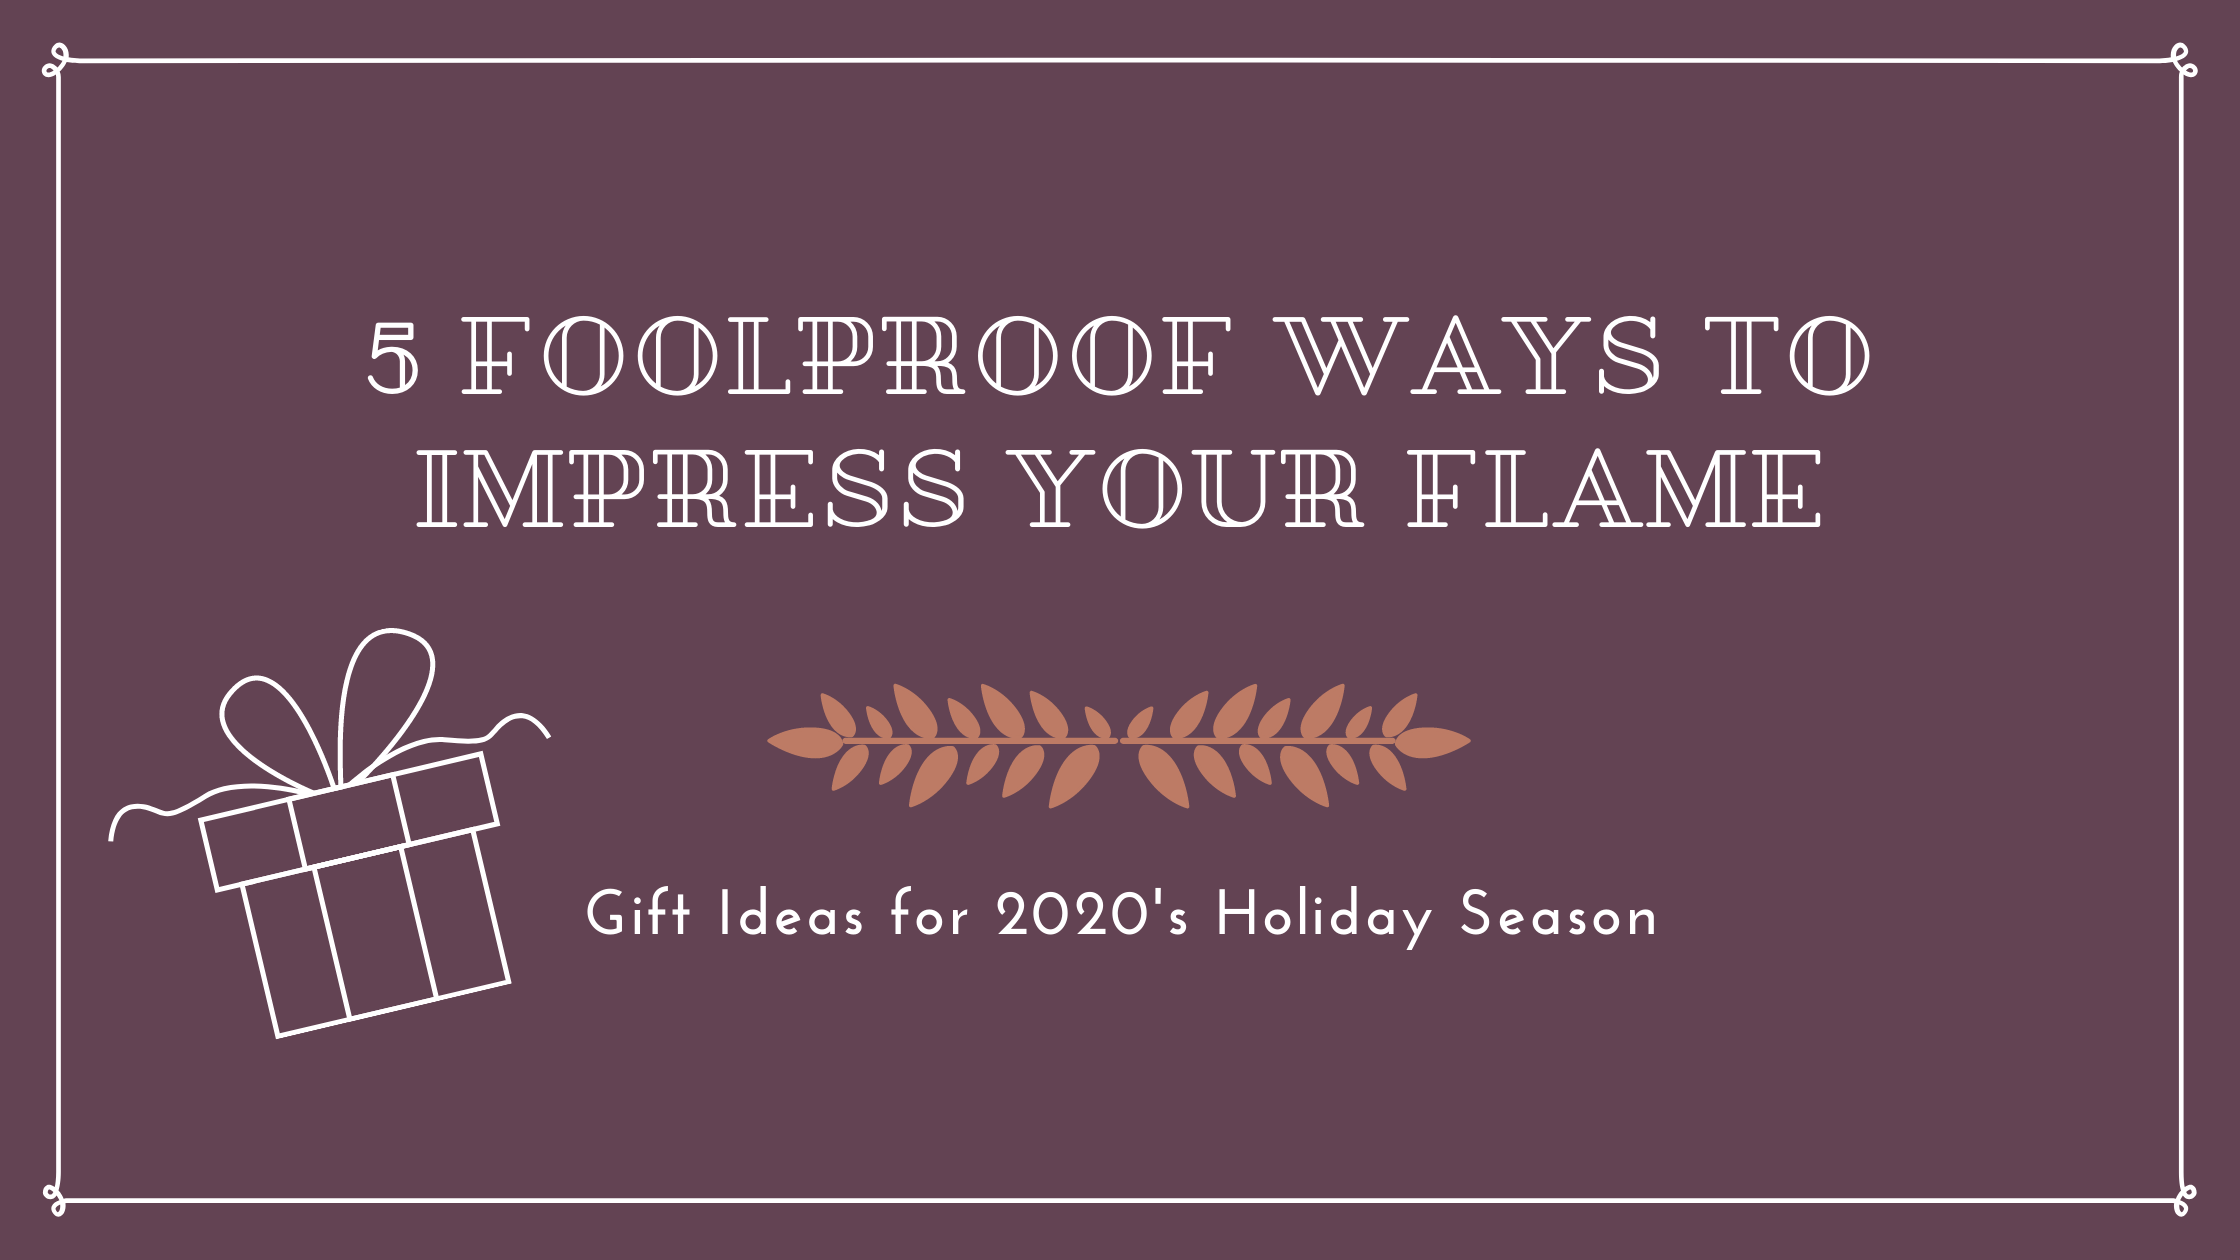 5 Foolproof Ways to Impress Your Flame